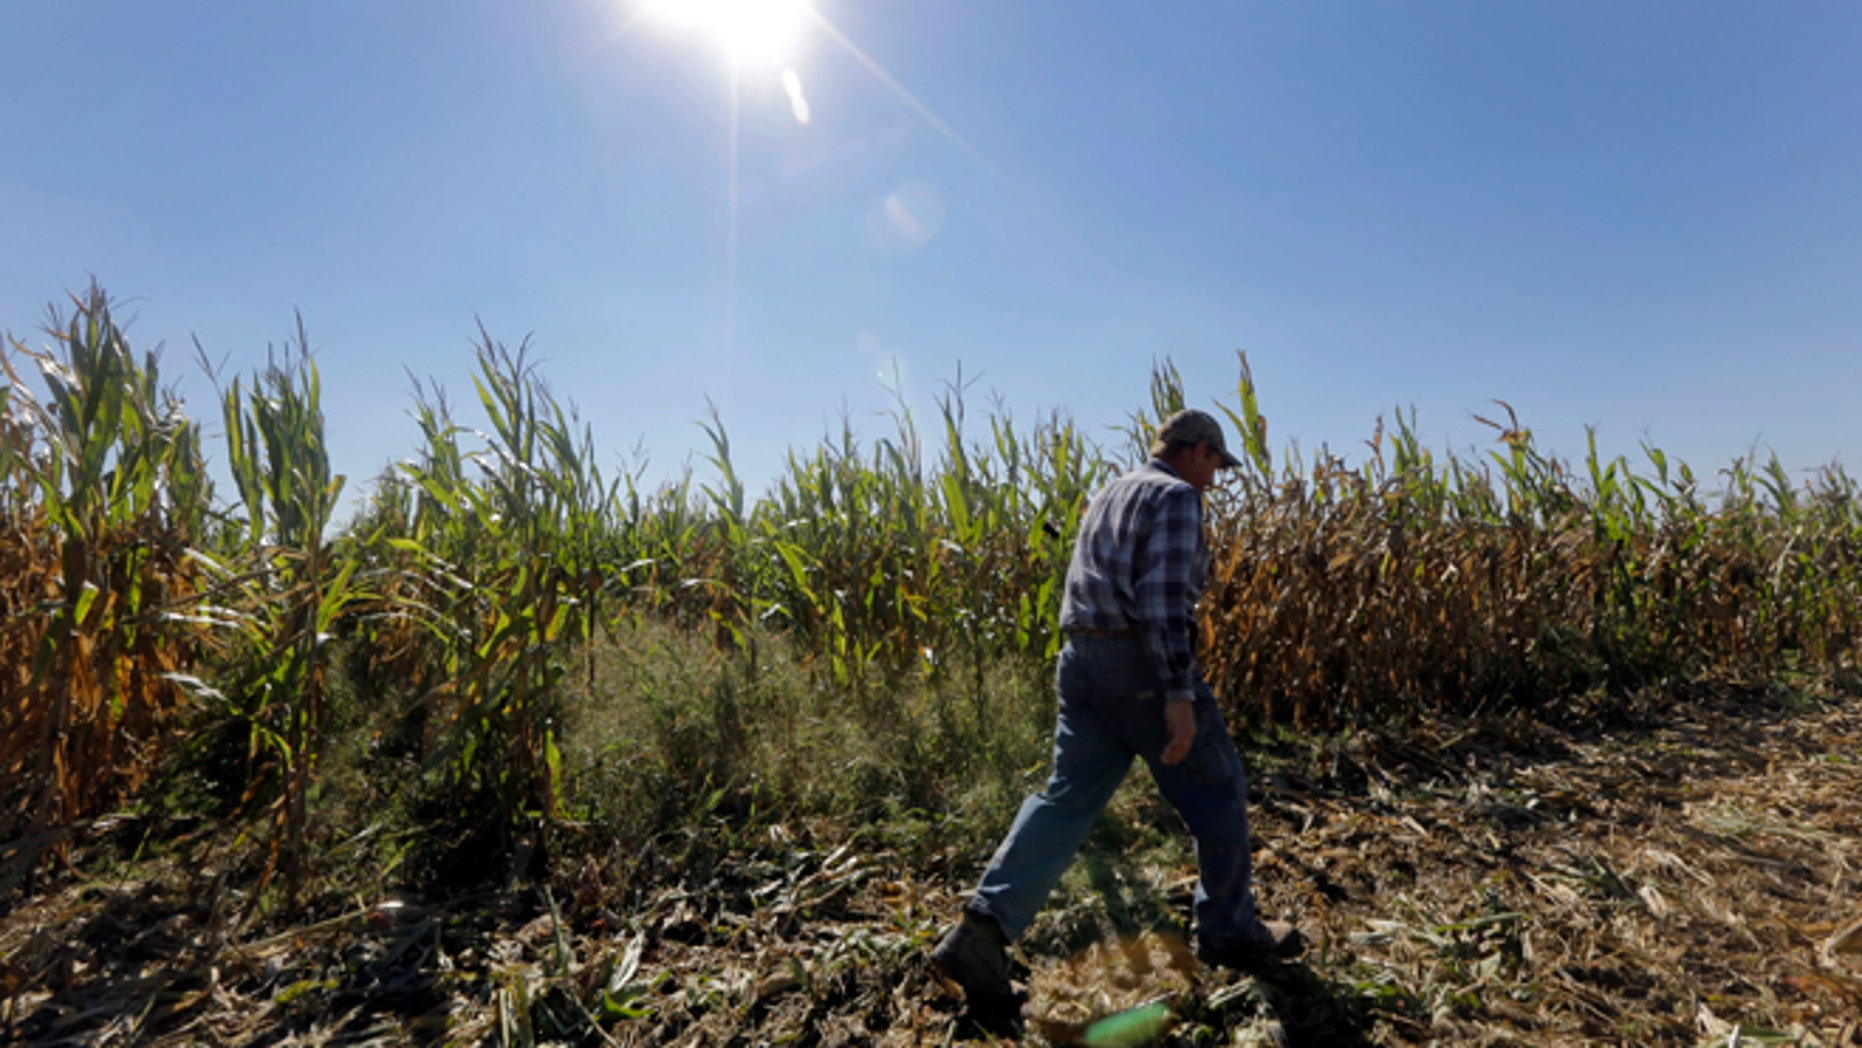 Oct. 16, 2013: Larry Hasheider walks along one of his corn fields on his farm in Okawville, Ill.